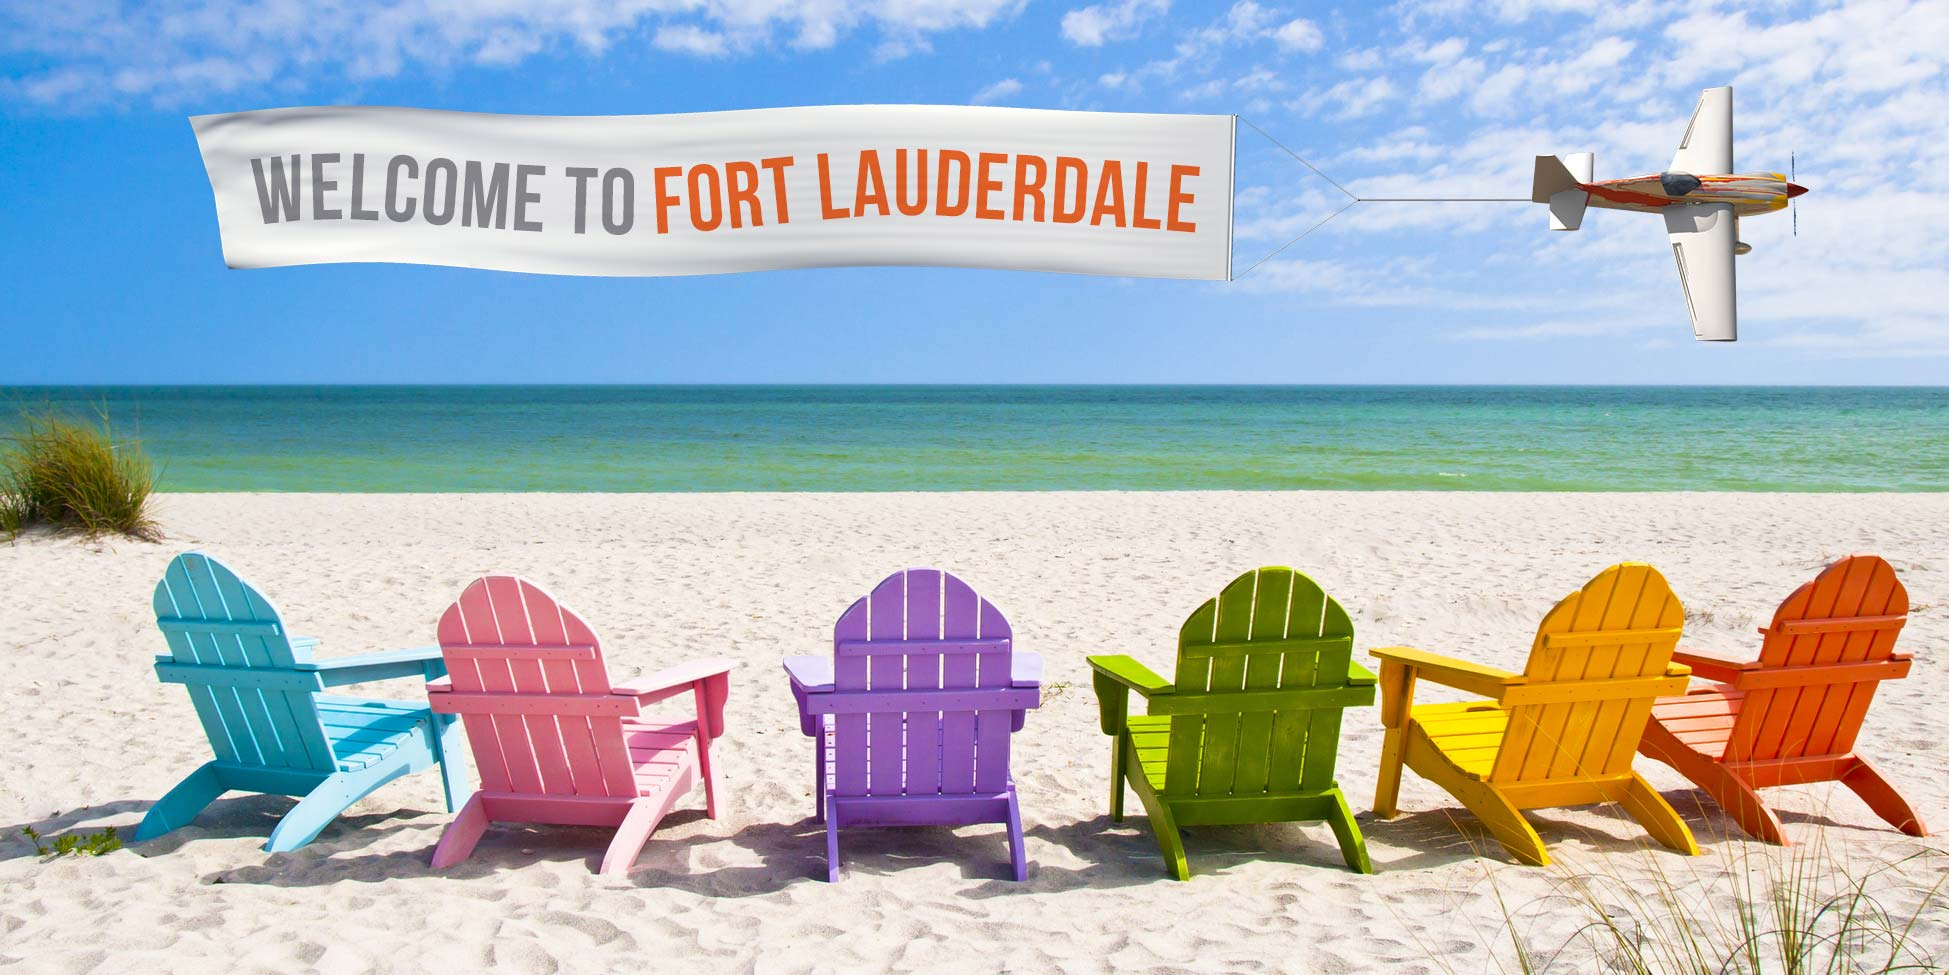 Welcome to Fort Lauderdale